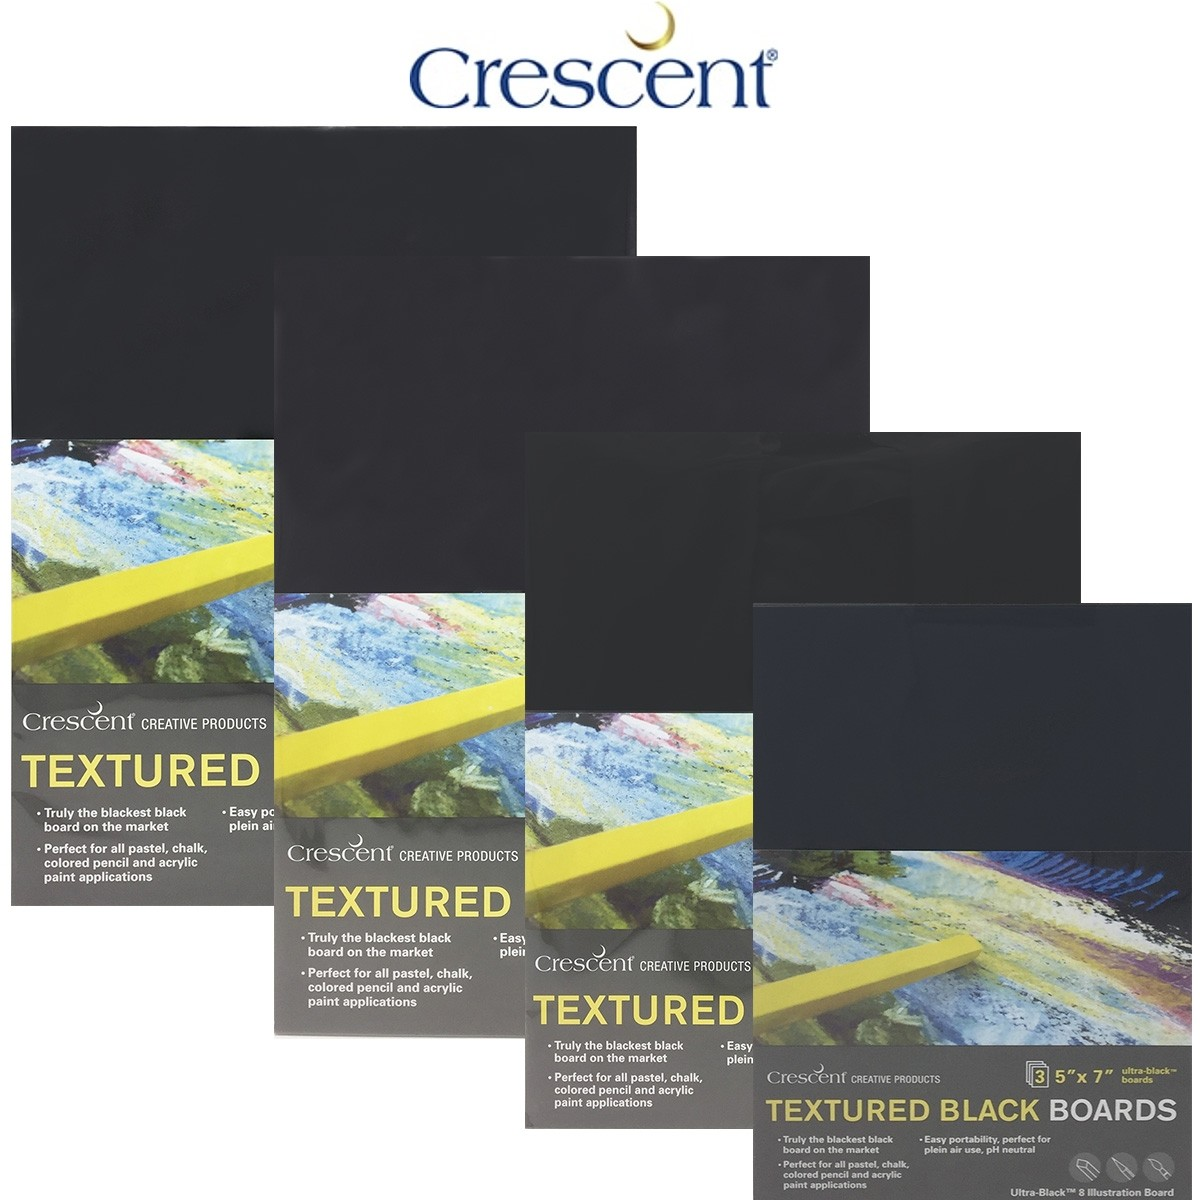 Crescent Ultra-Black Art Boards Blackest black board on the market